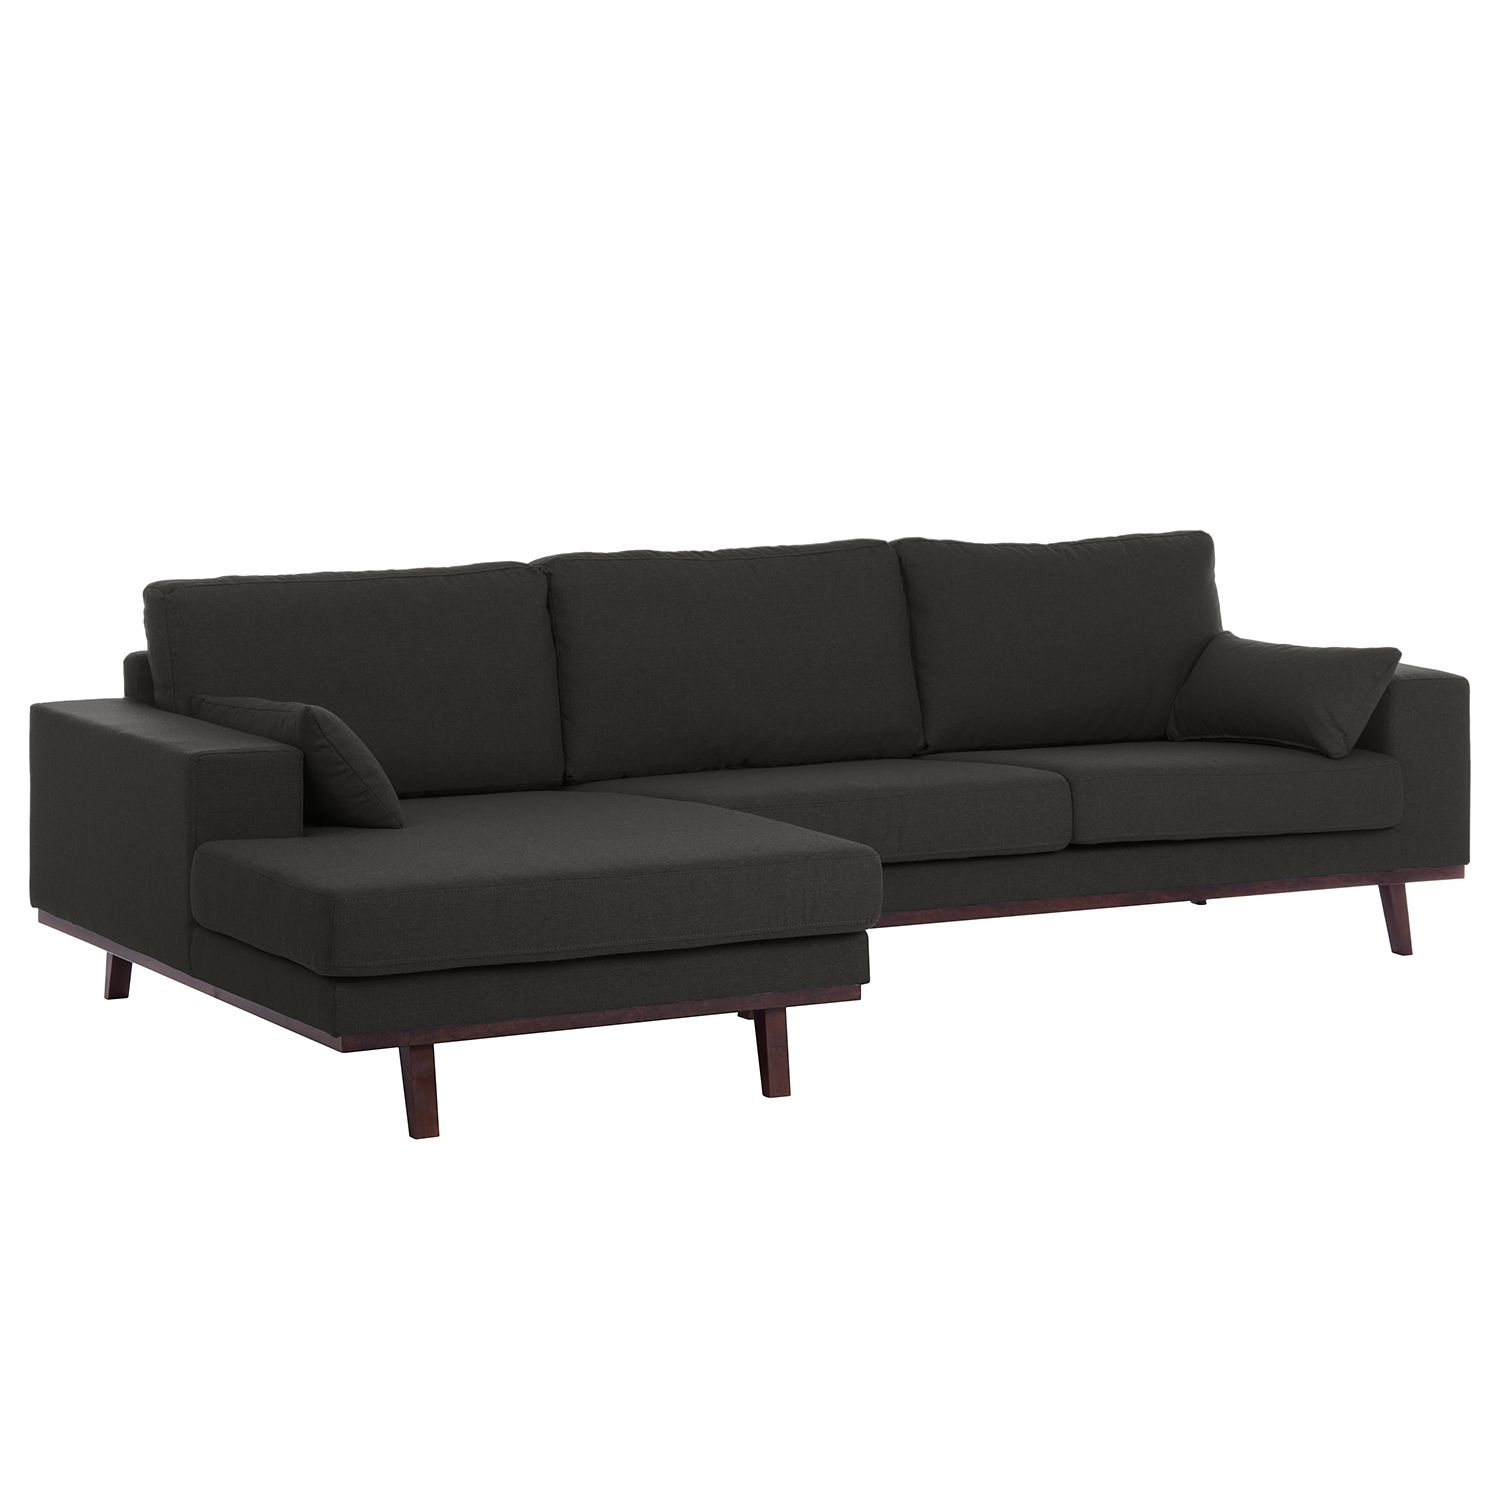 Sofa Mit Ottomane Und Bettfunktion Ecksofa Billund I Webstoff Products Sofa Furniture